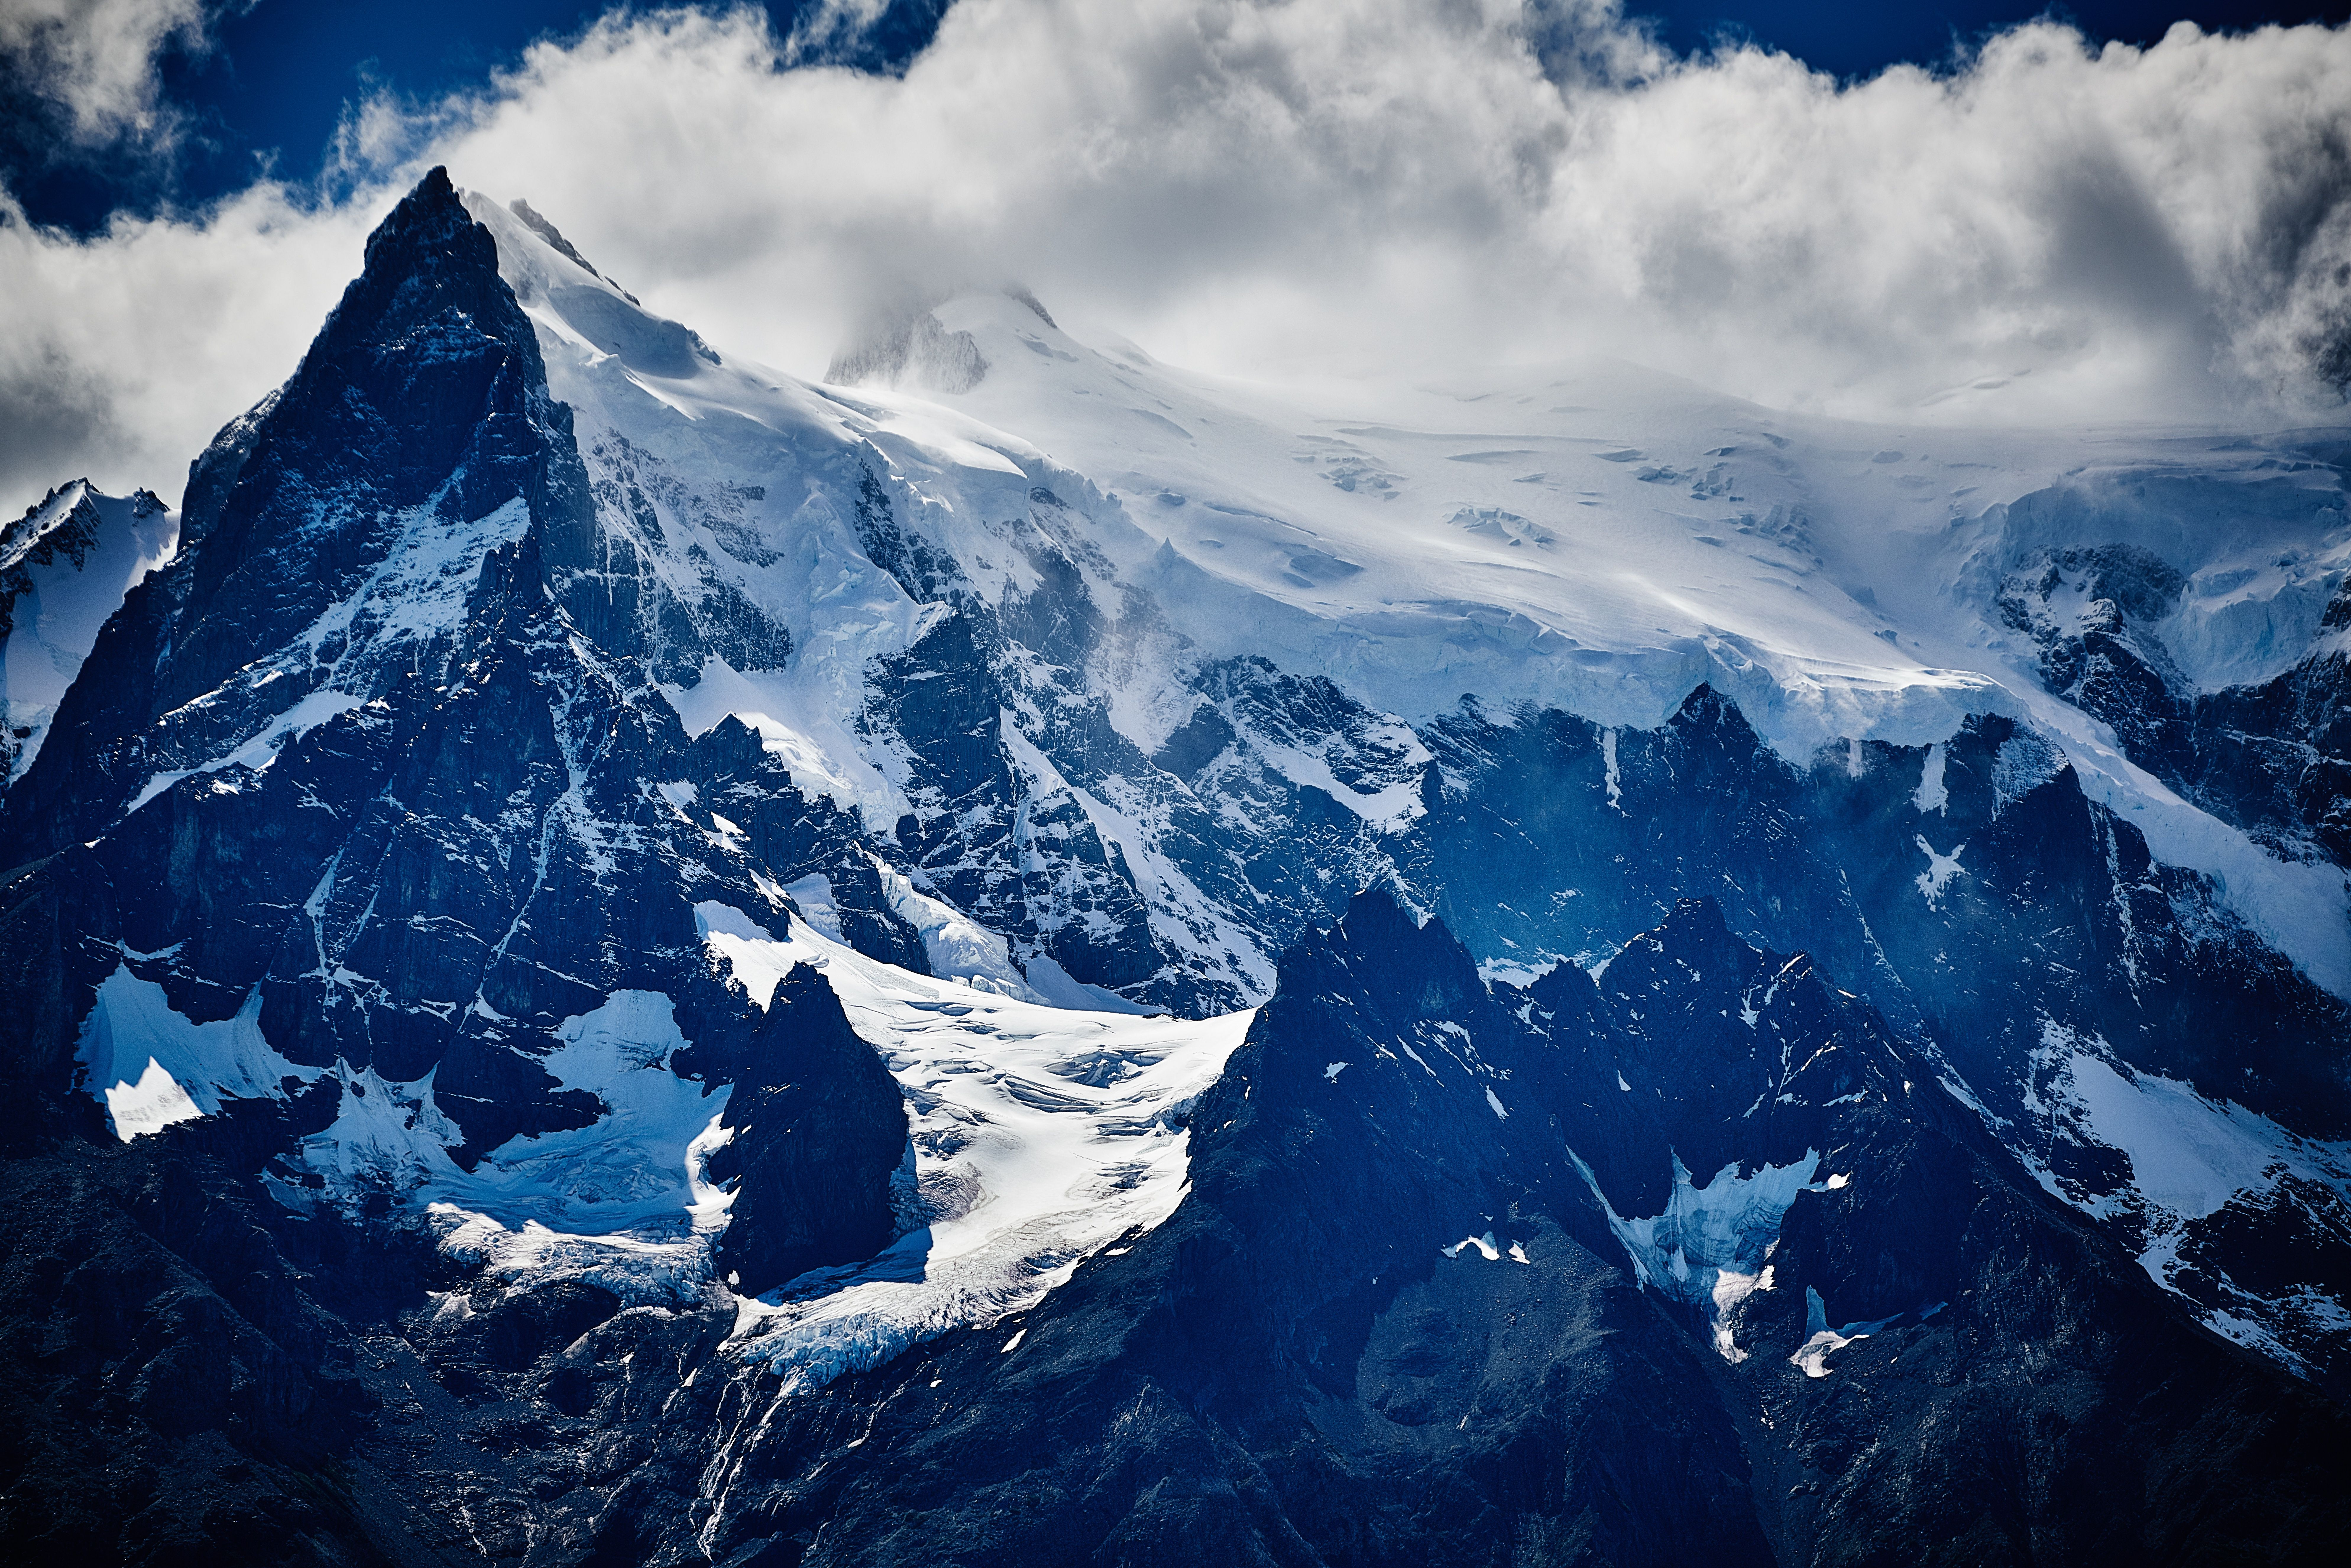 8k Mountain Wallpapers Top Free 8k Mountain Backgrounds